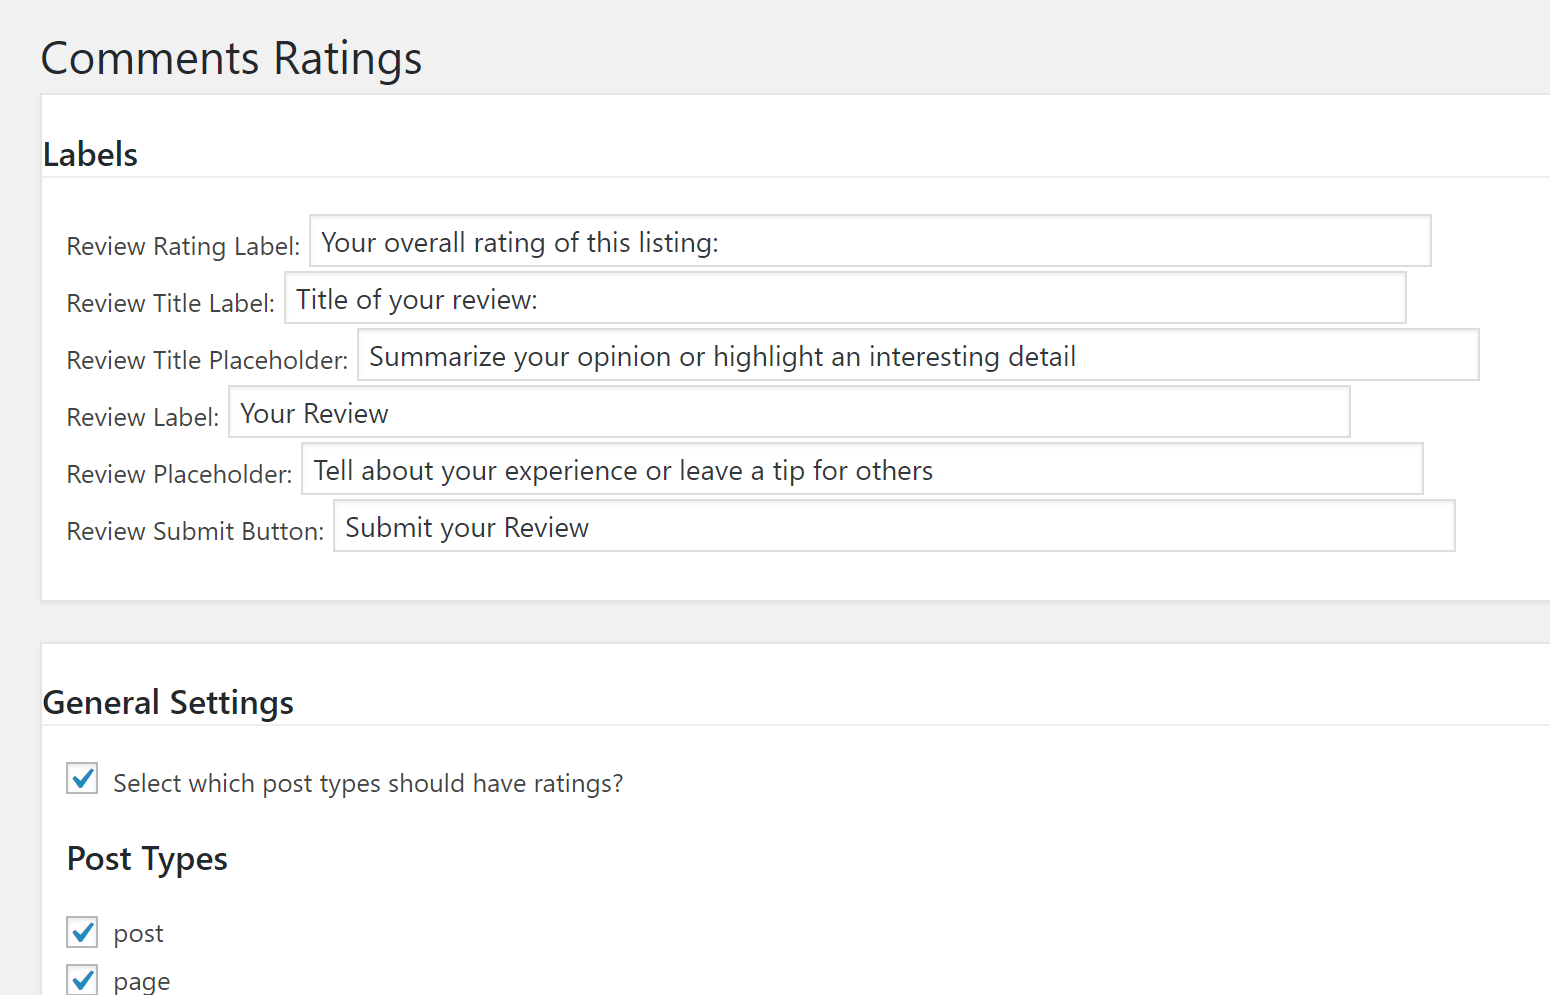 Comment Ratings settings